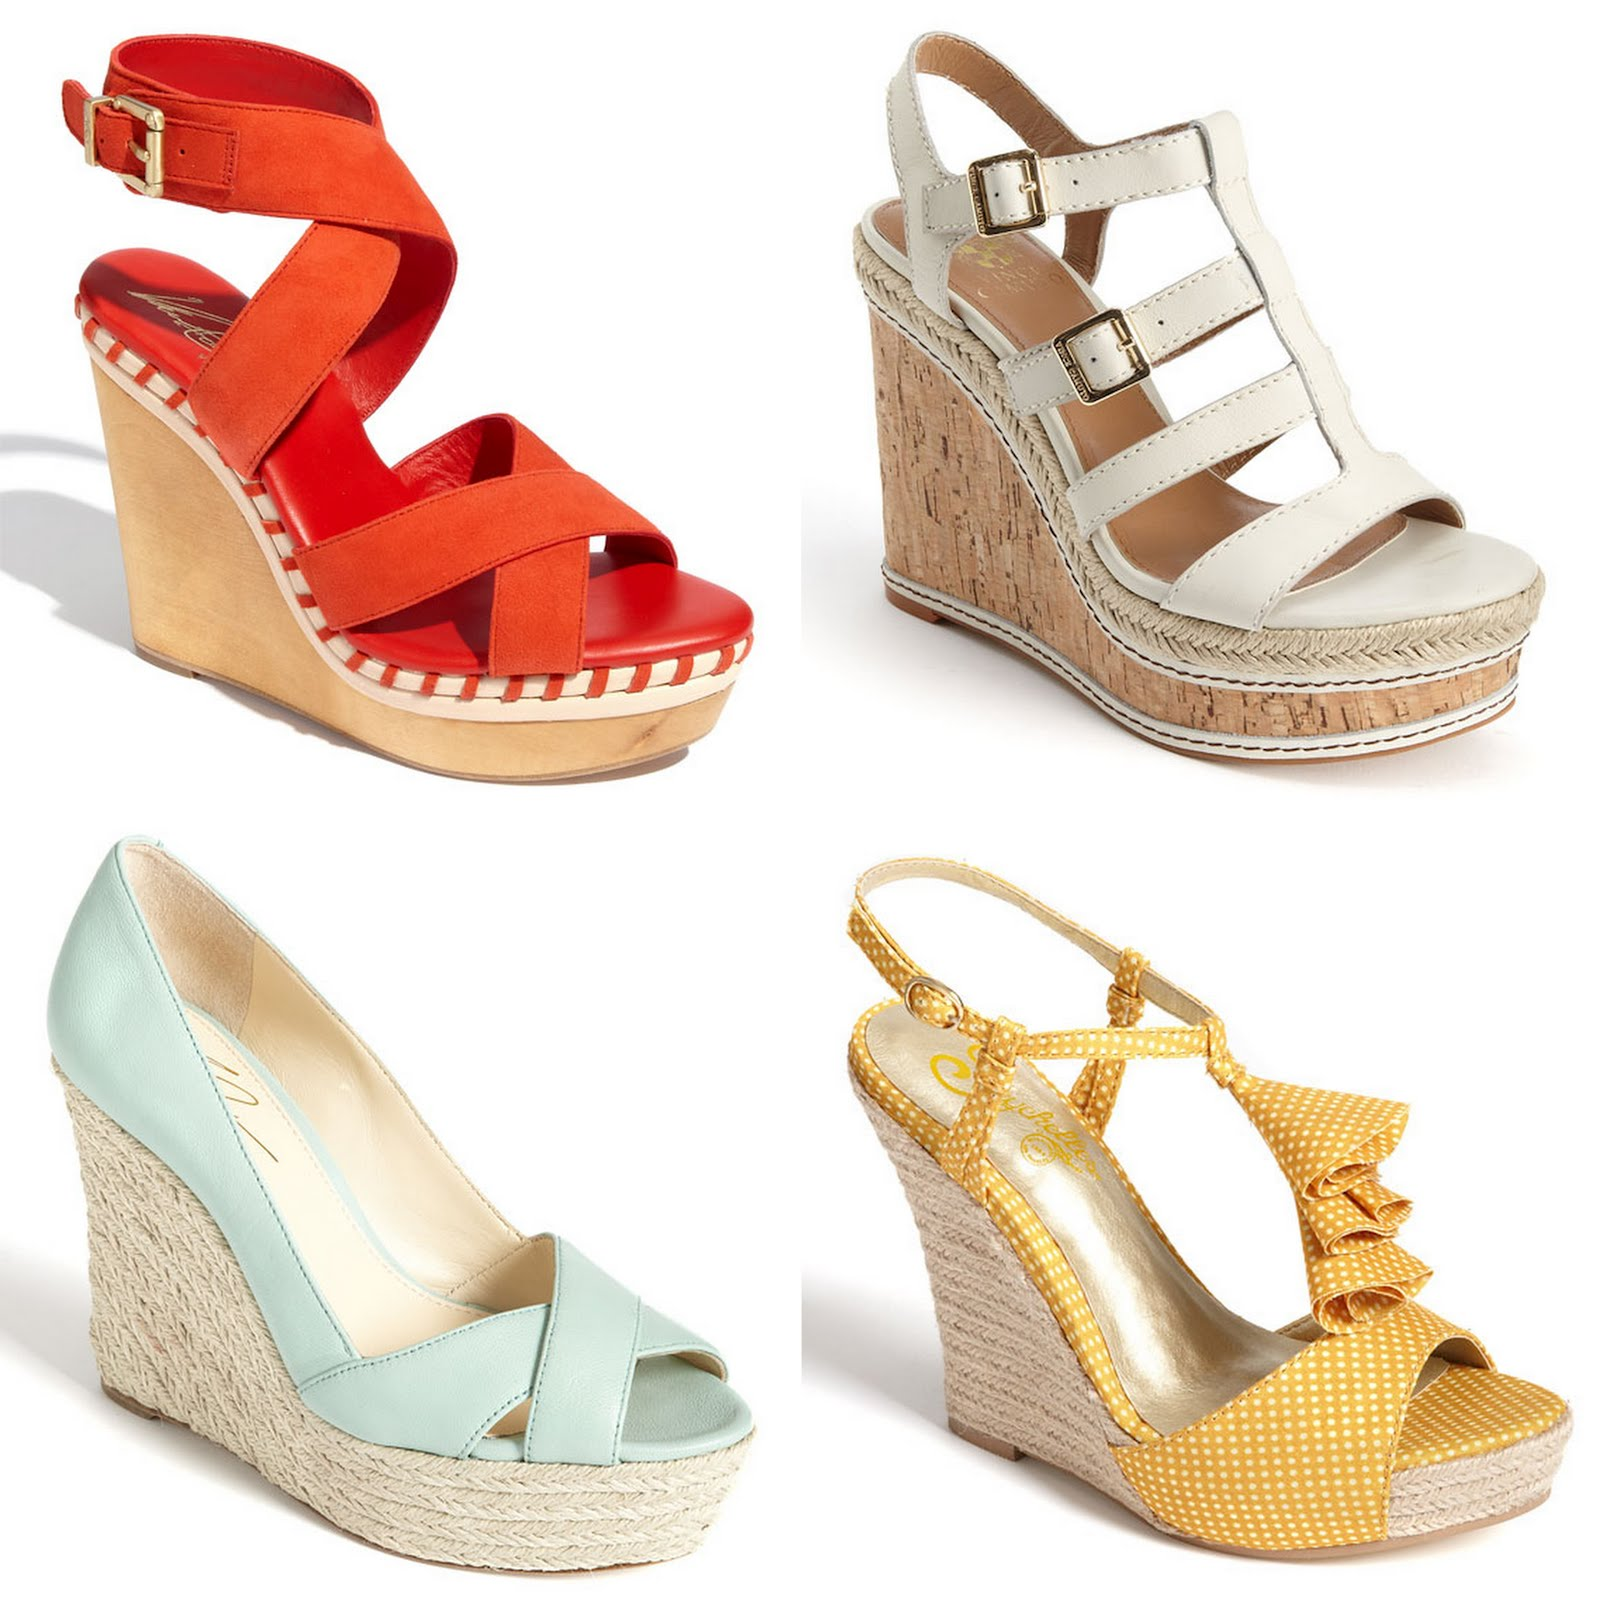 61828342886 Here are some pics to some cute wedges since I would never wear the ones on  the article anyways.